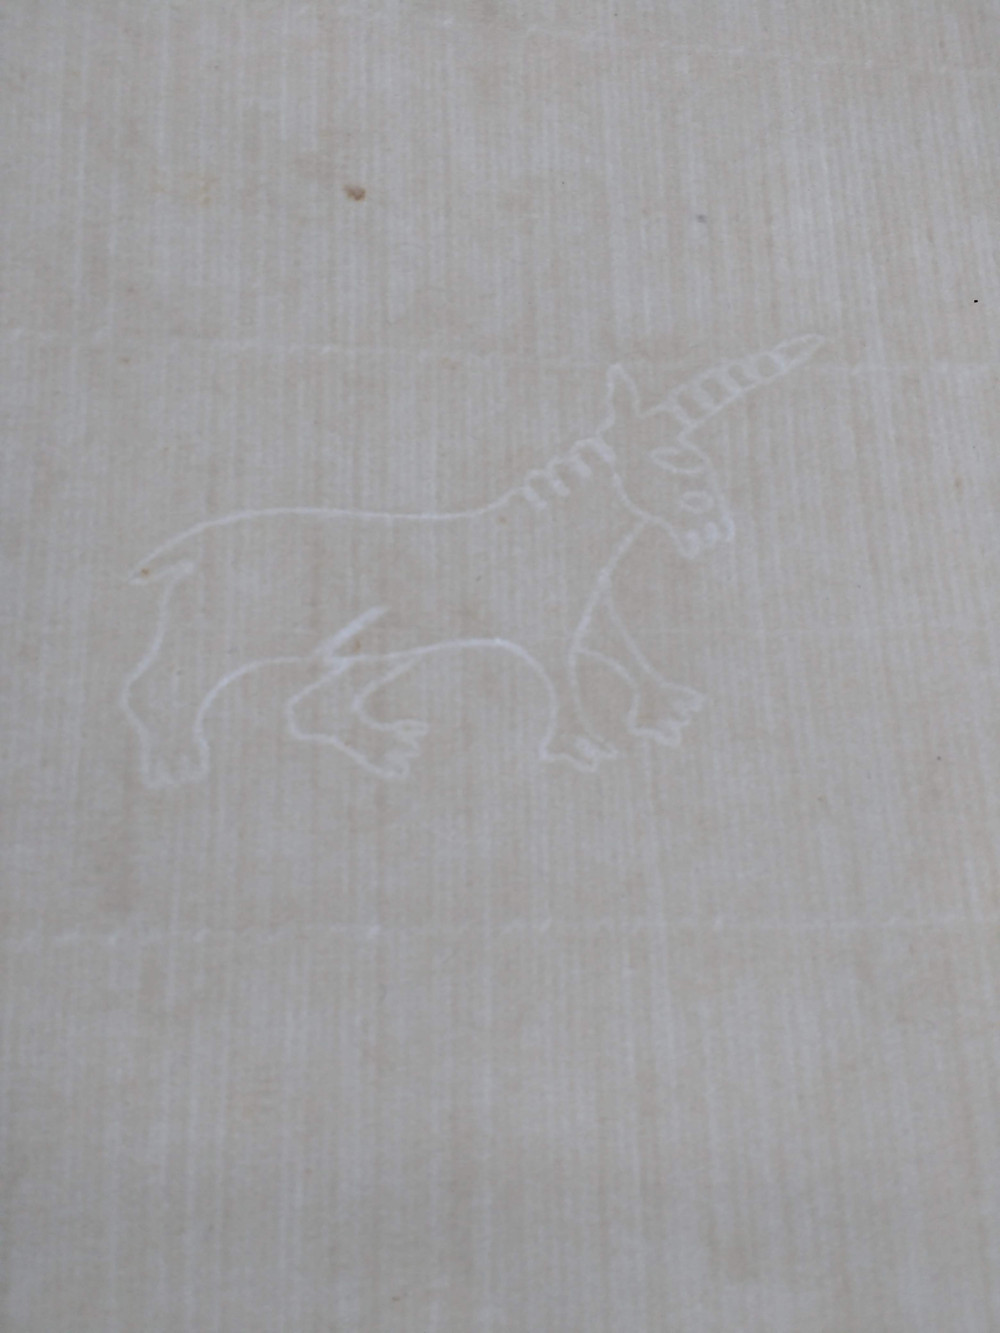 Stumpy Unicorn watermark